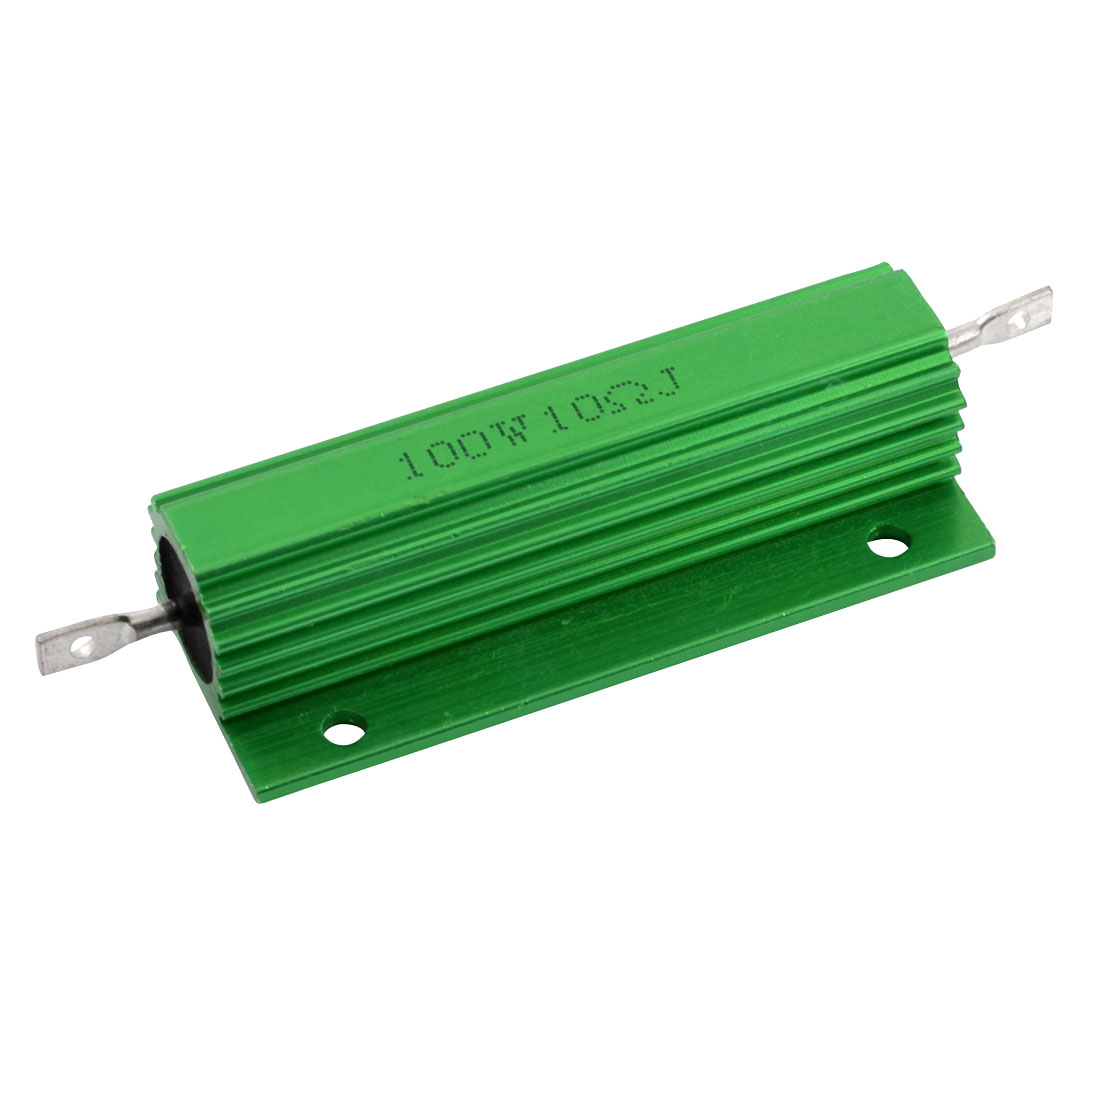 Aluminum Housed Chassis Mounted 100W Watt 10 Ohm Wirewound Resistor